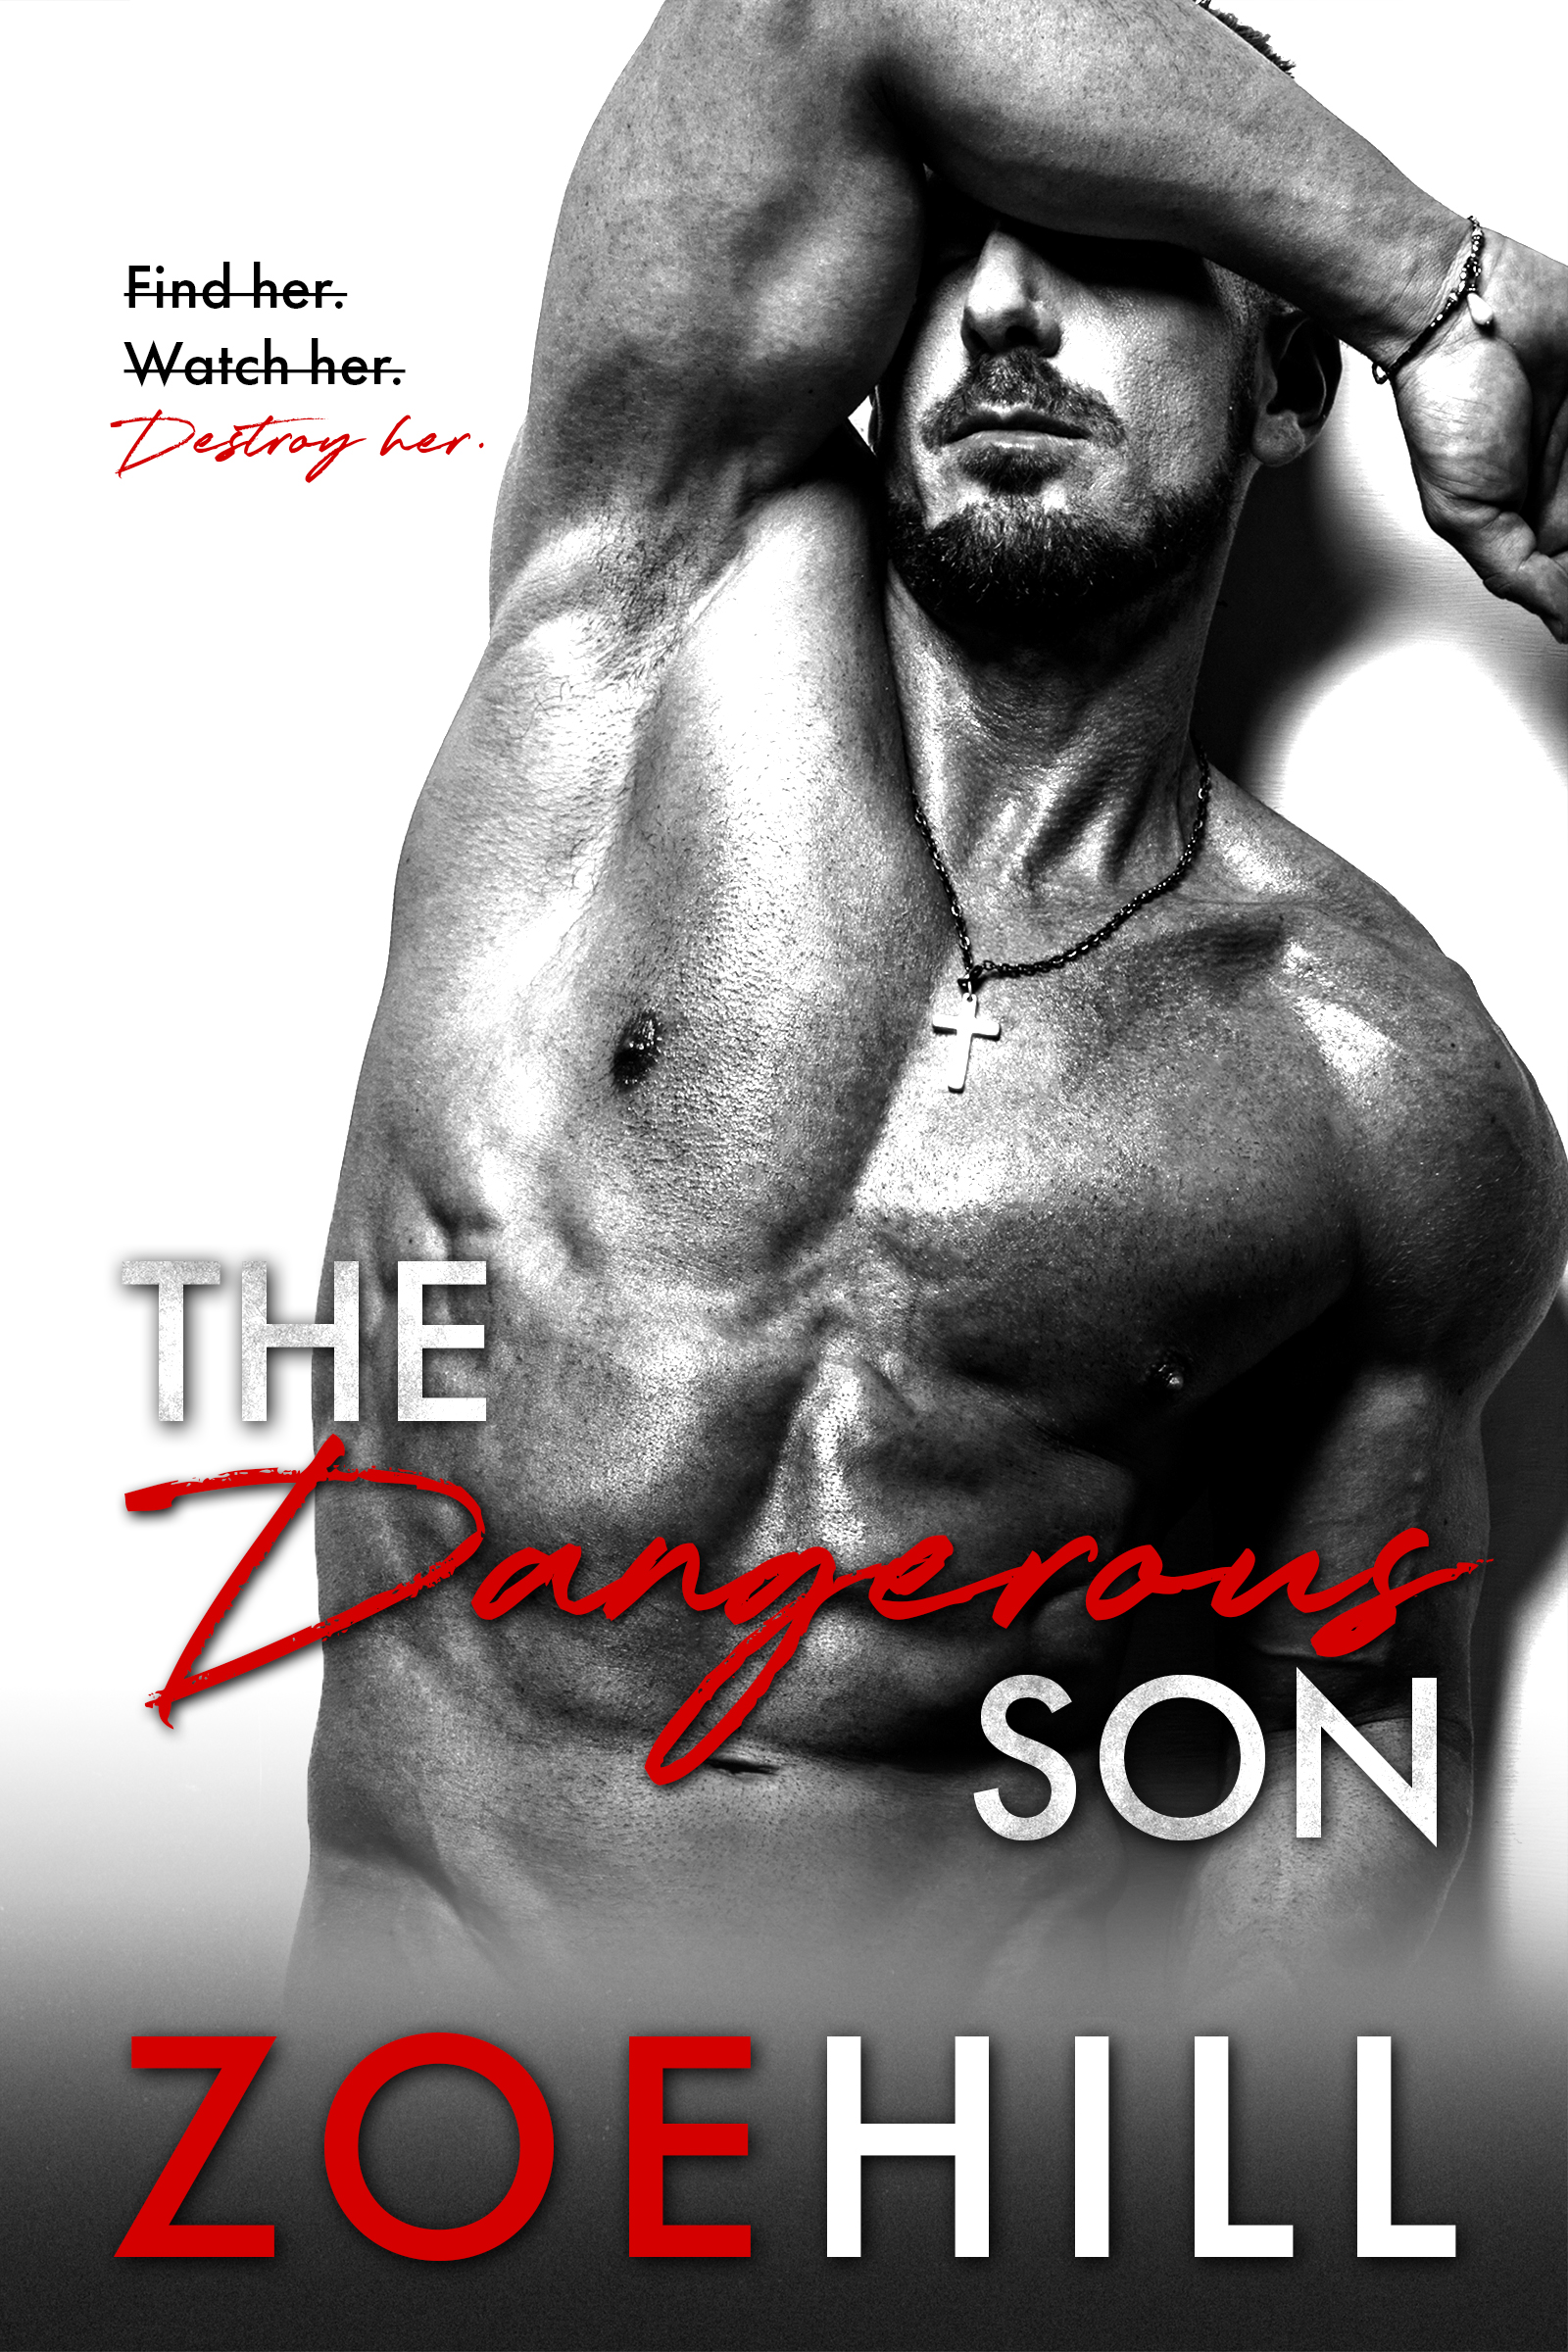 Zoe Hill The Dangerous Son eBook Cover